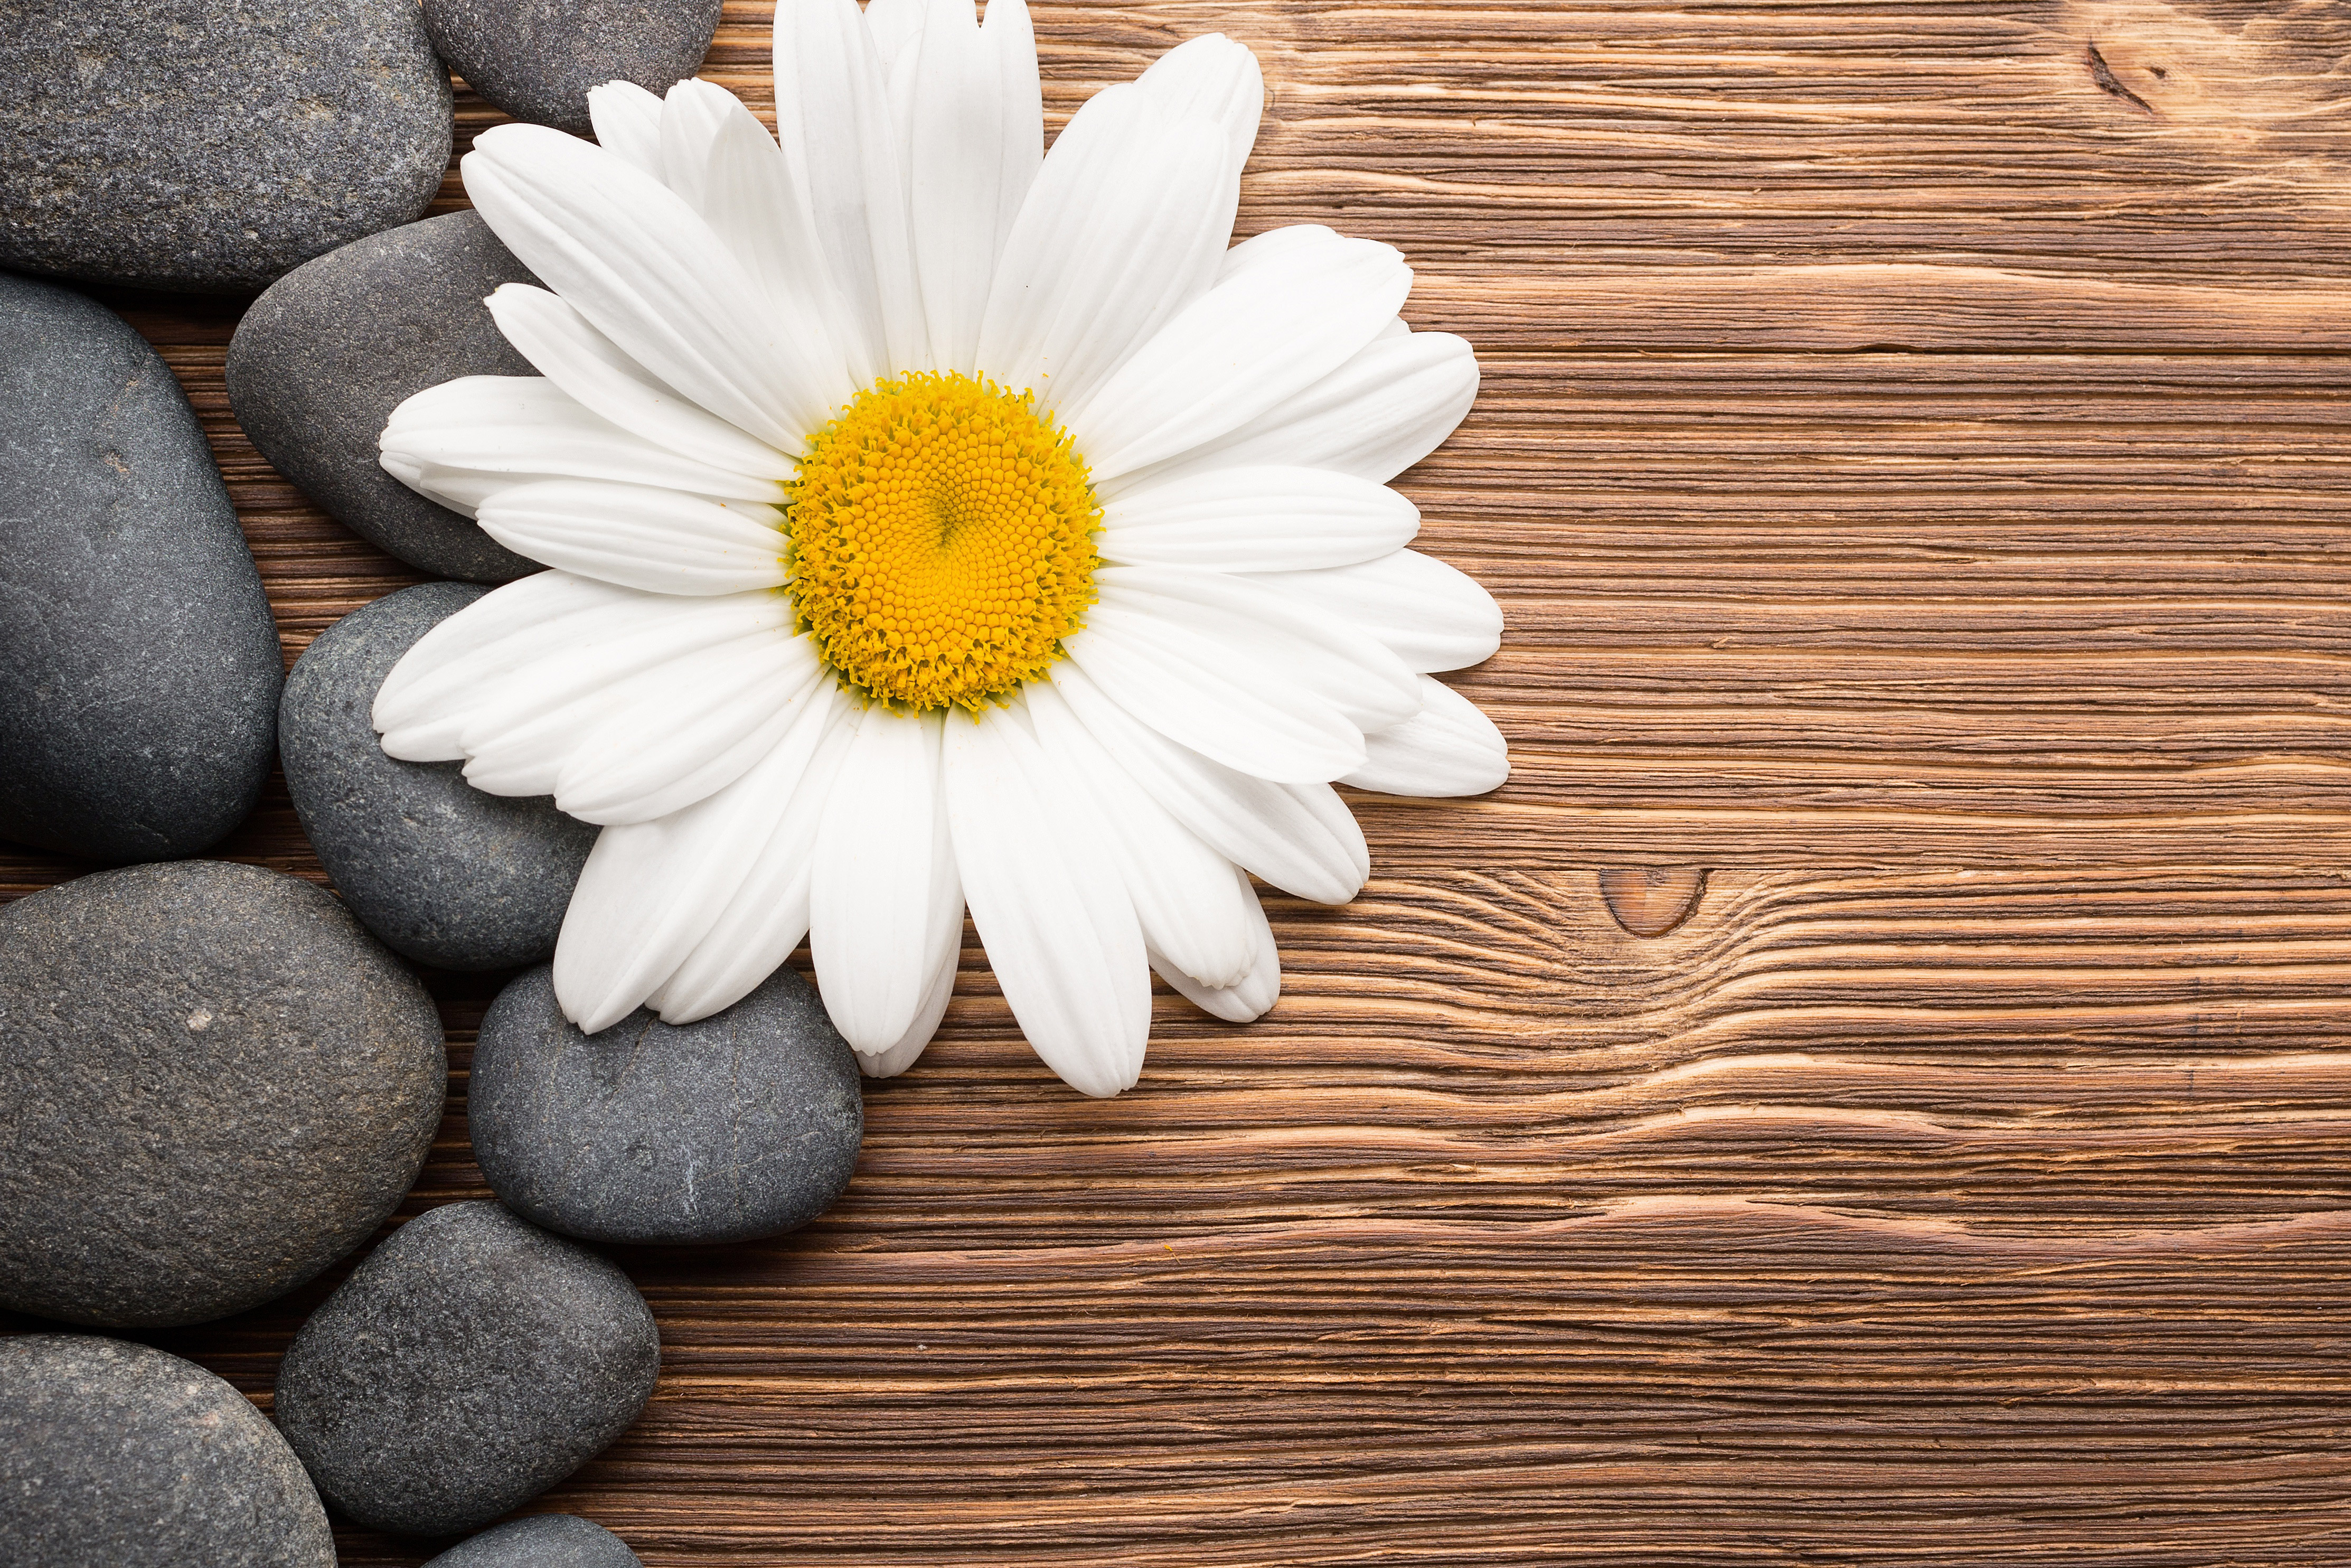 camomiles stones white flower 4k 1606509606 - Camomiles Stones White Flower 4k - Camomiles Stones White Flower 4k wallpapers